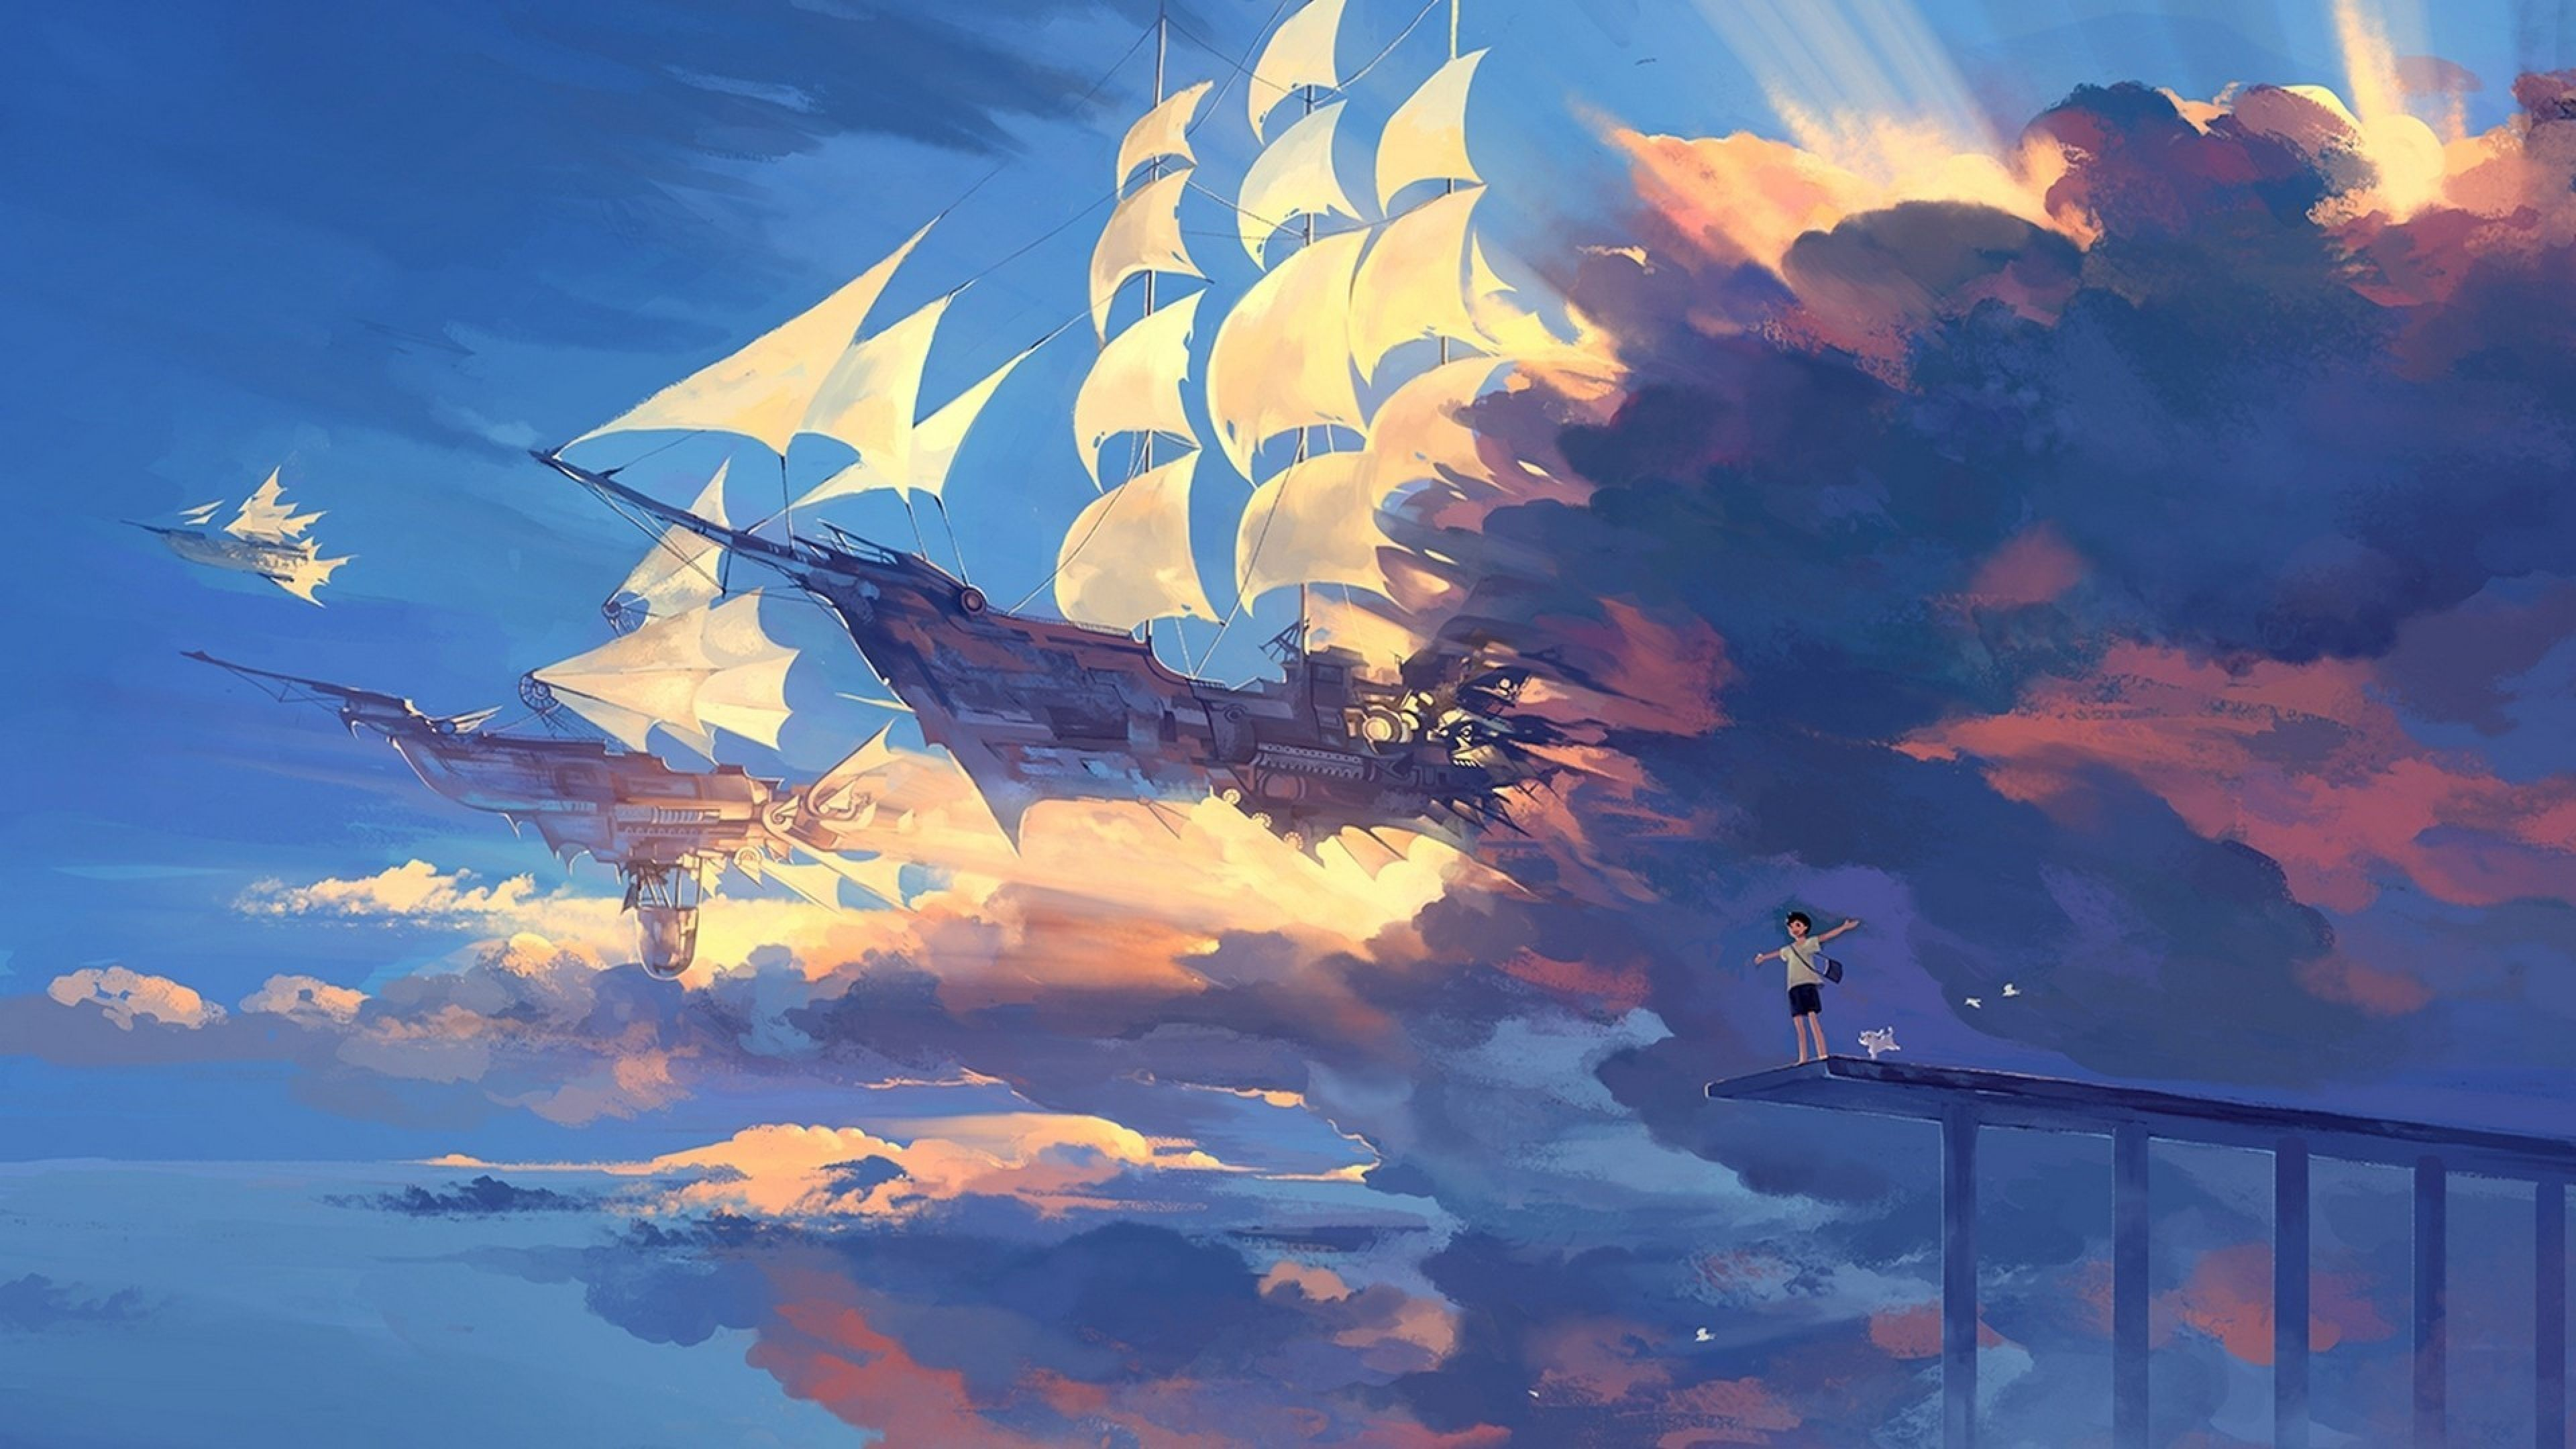 3840x2160 Image result for anime sky | Anime | Pinterest | Anime, Scenery and ...